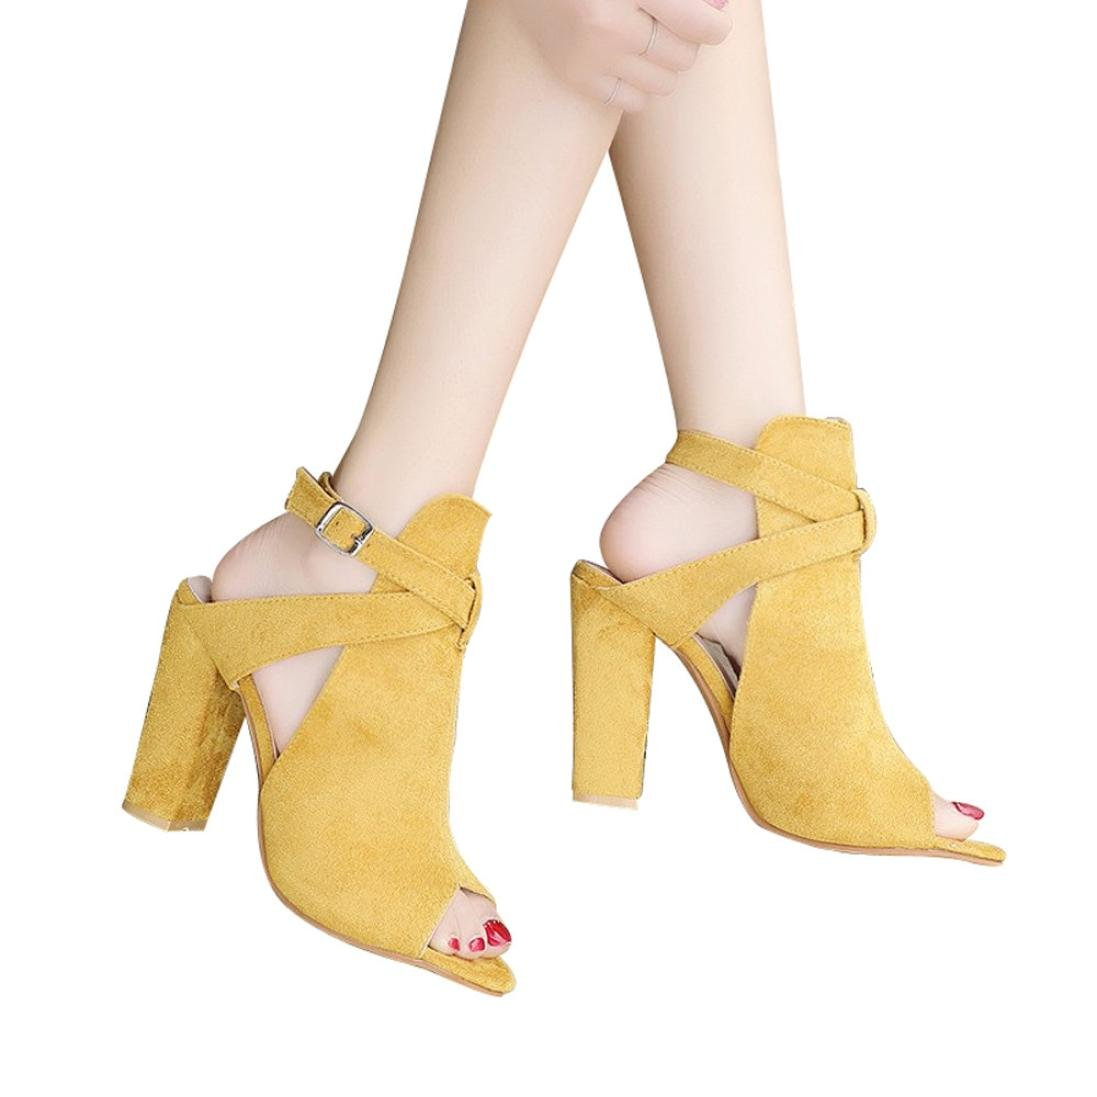 vermers Clearance Deals Women High Heeled Shoes Fashion Solid Flock Peep Toe Wedges Hasp Sandals(US:9, Yellow)